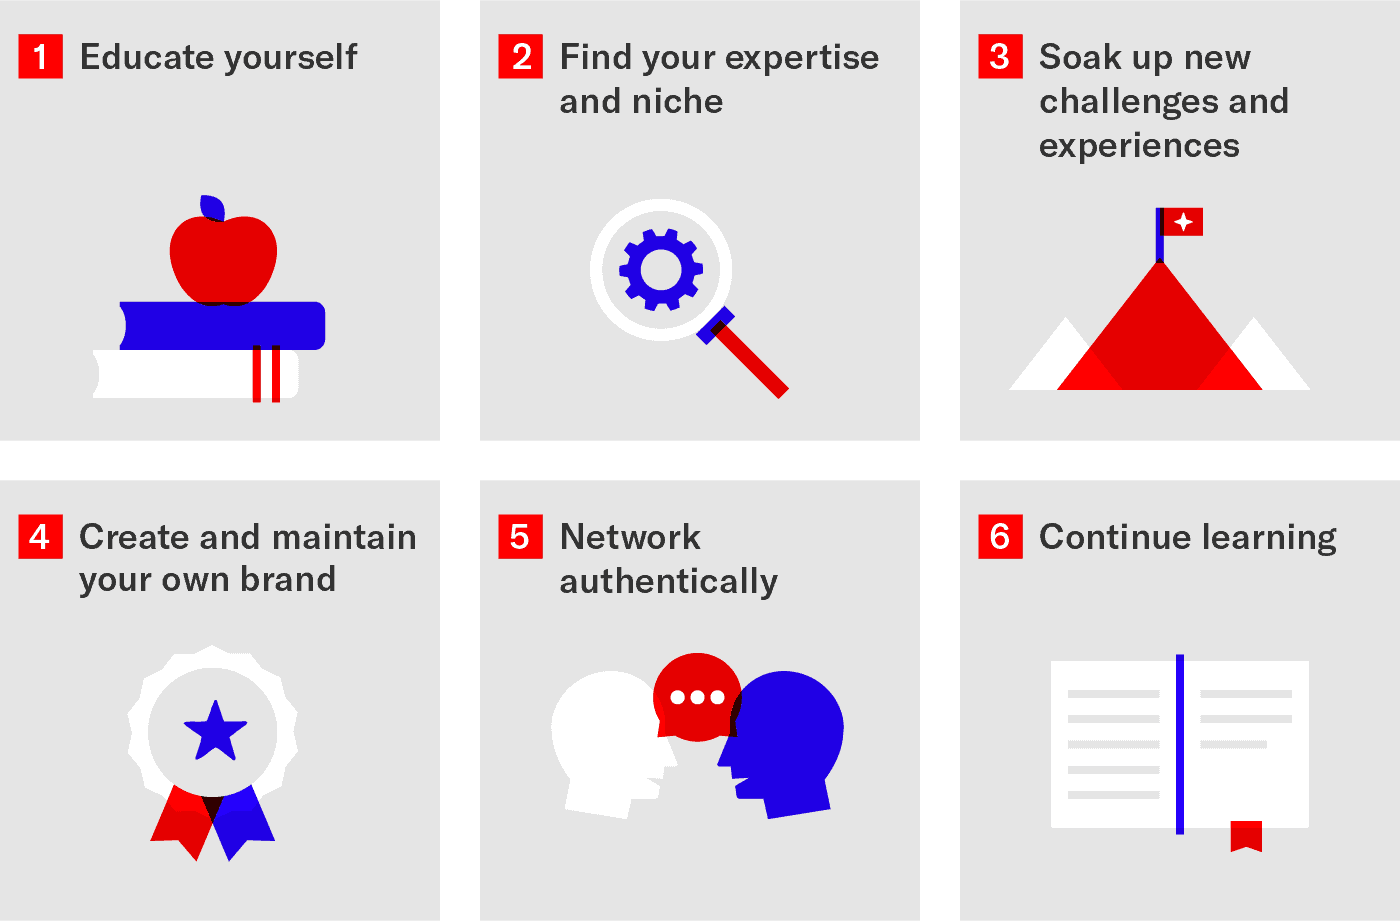 6 steps to become a content creator: Educate Yourself, Find Your Expertise and Niche, Soak Up Experiences and New Challenges, Create and Maintain Your Own Brand, Network Authentically, Continue Learning